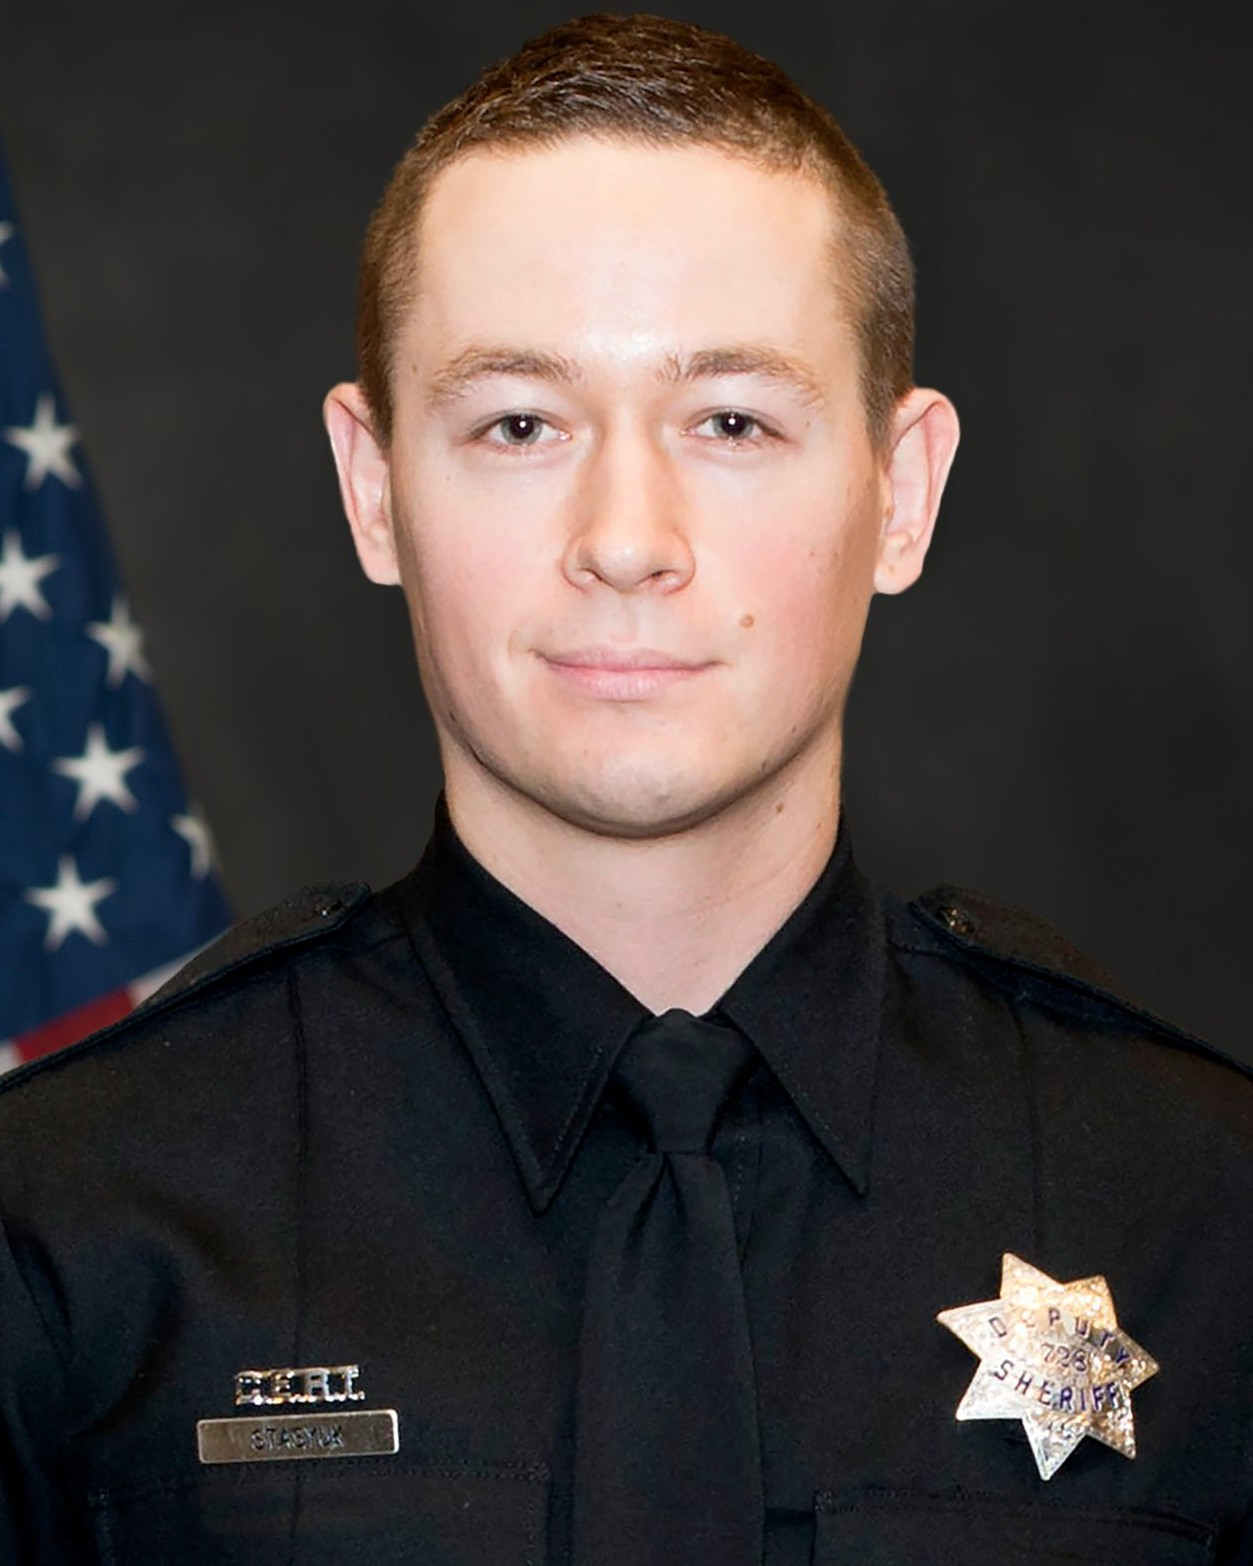 Deputy Sheriff Mark V. Stasyuk | Sacramento County Sheriff's Department, California